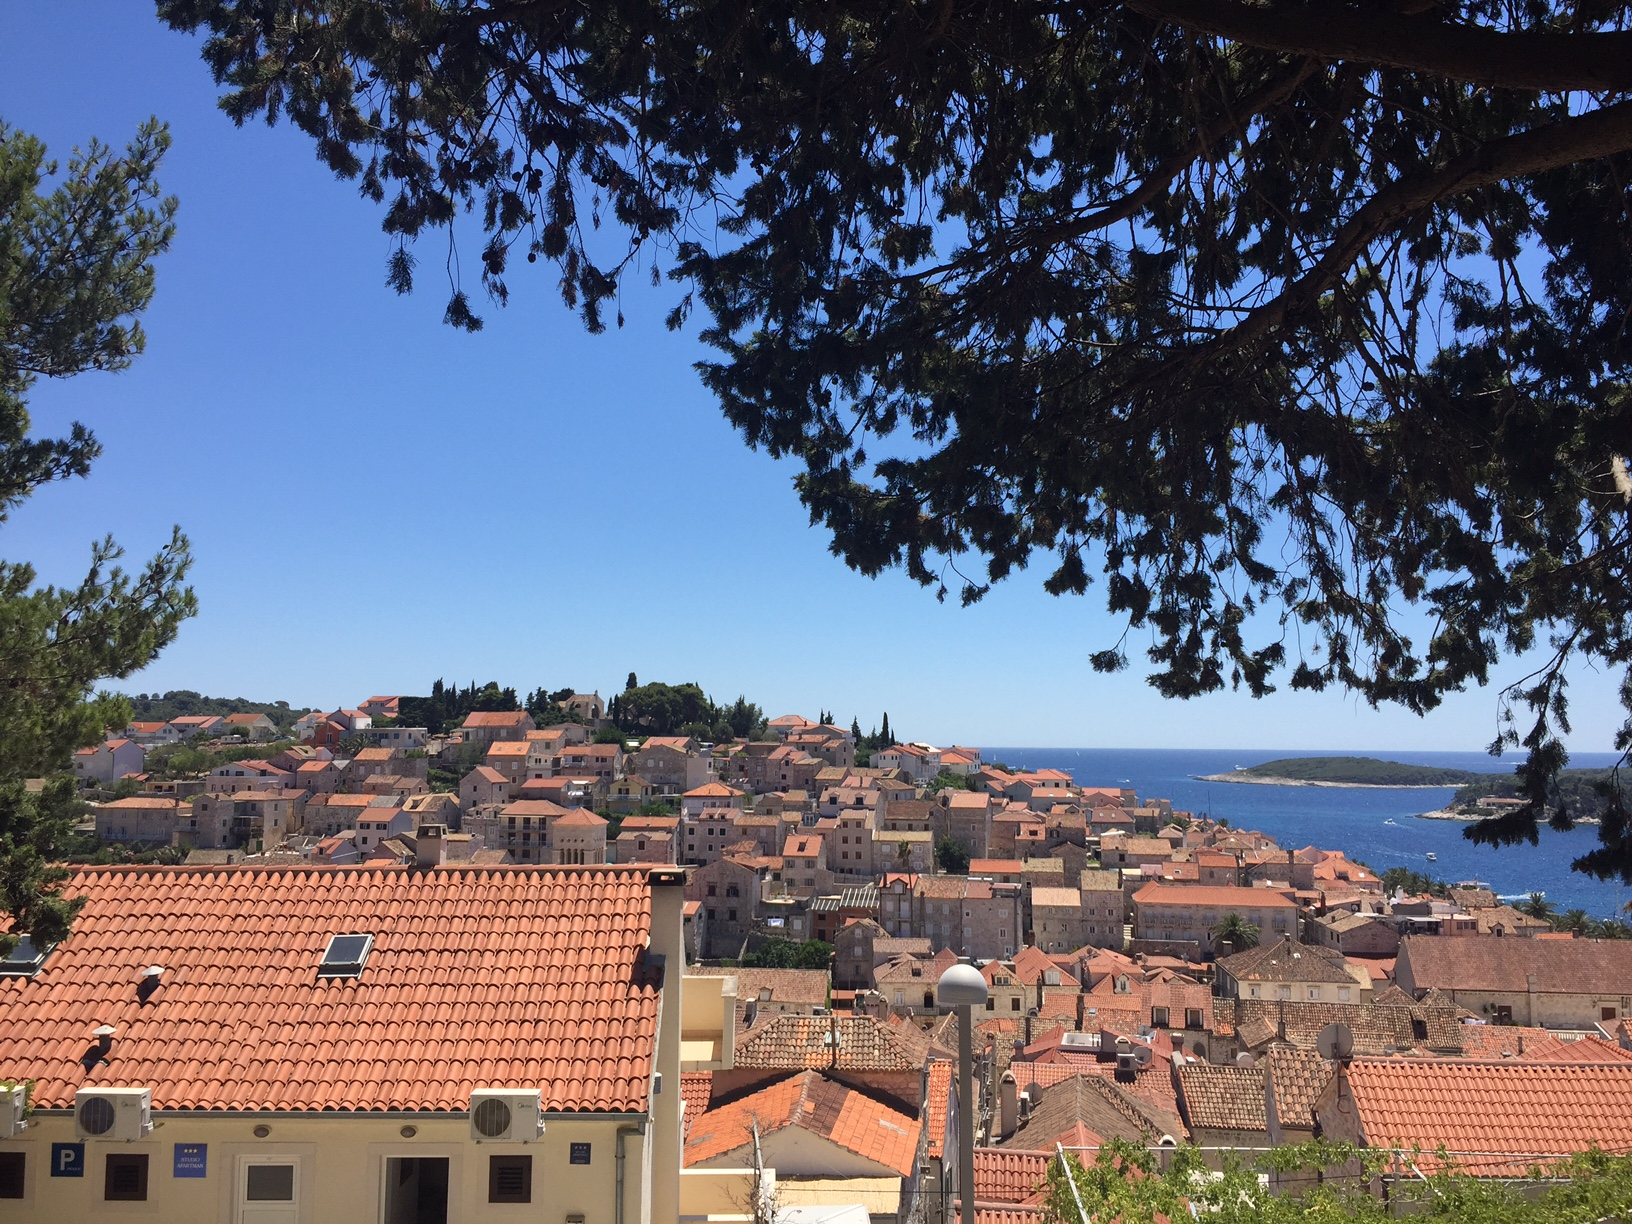 The tiled terracotta roofs of Hvar from above, taken whilst en route to the historic fortress.